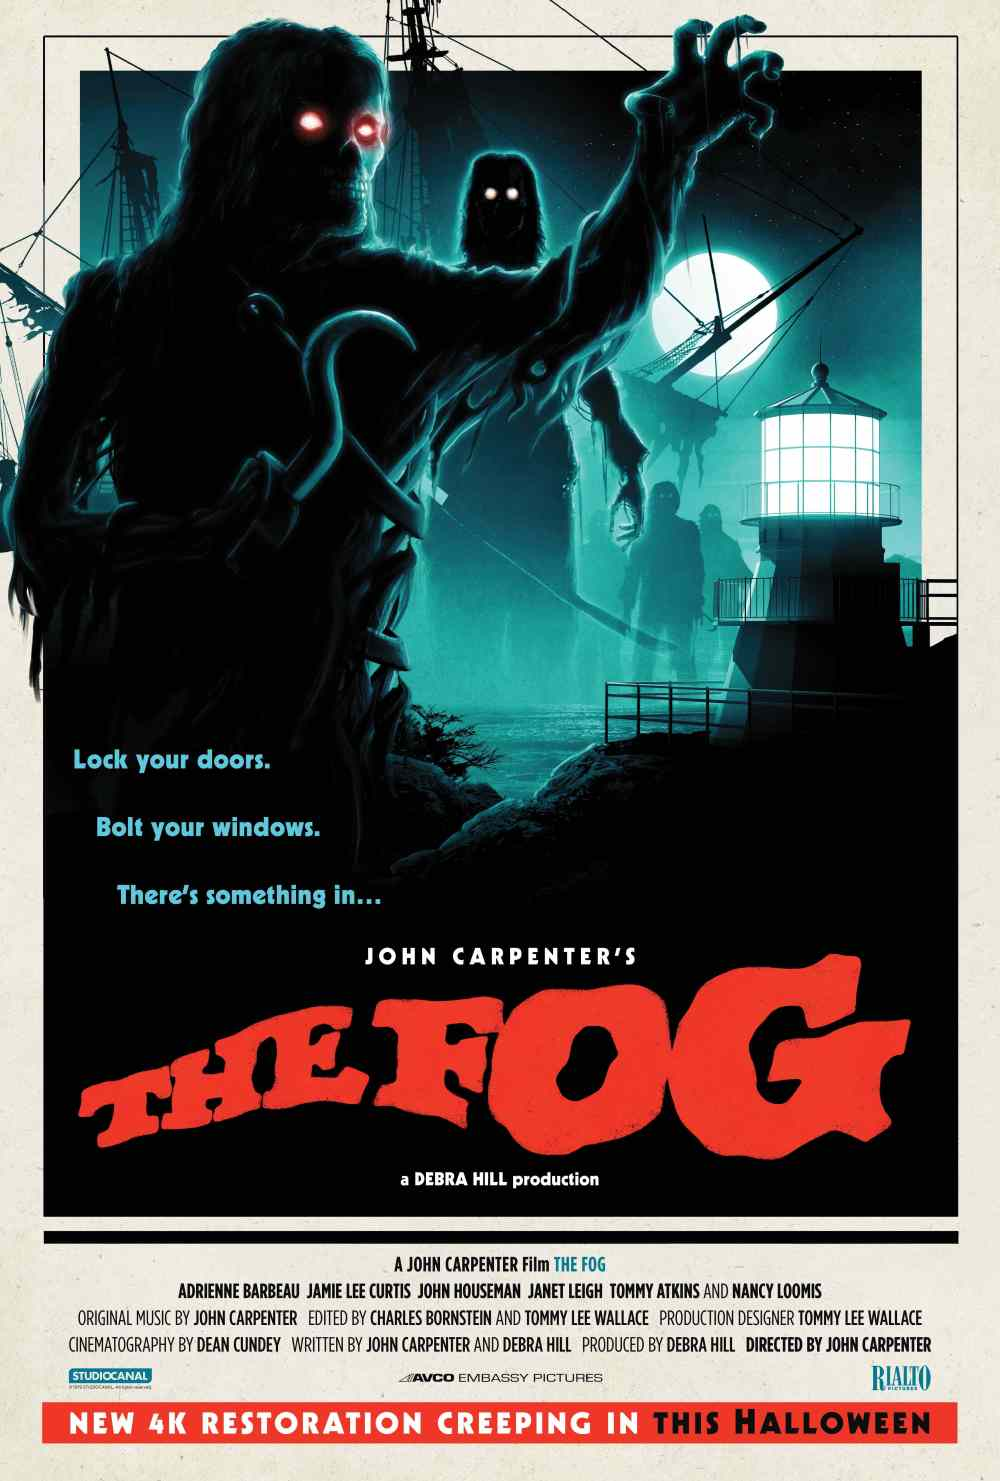 The Fog 4K Restoration poster